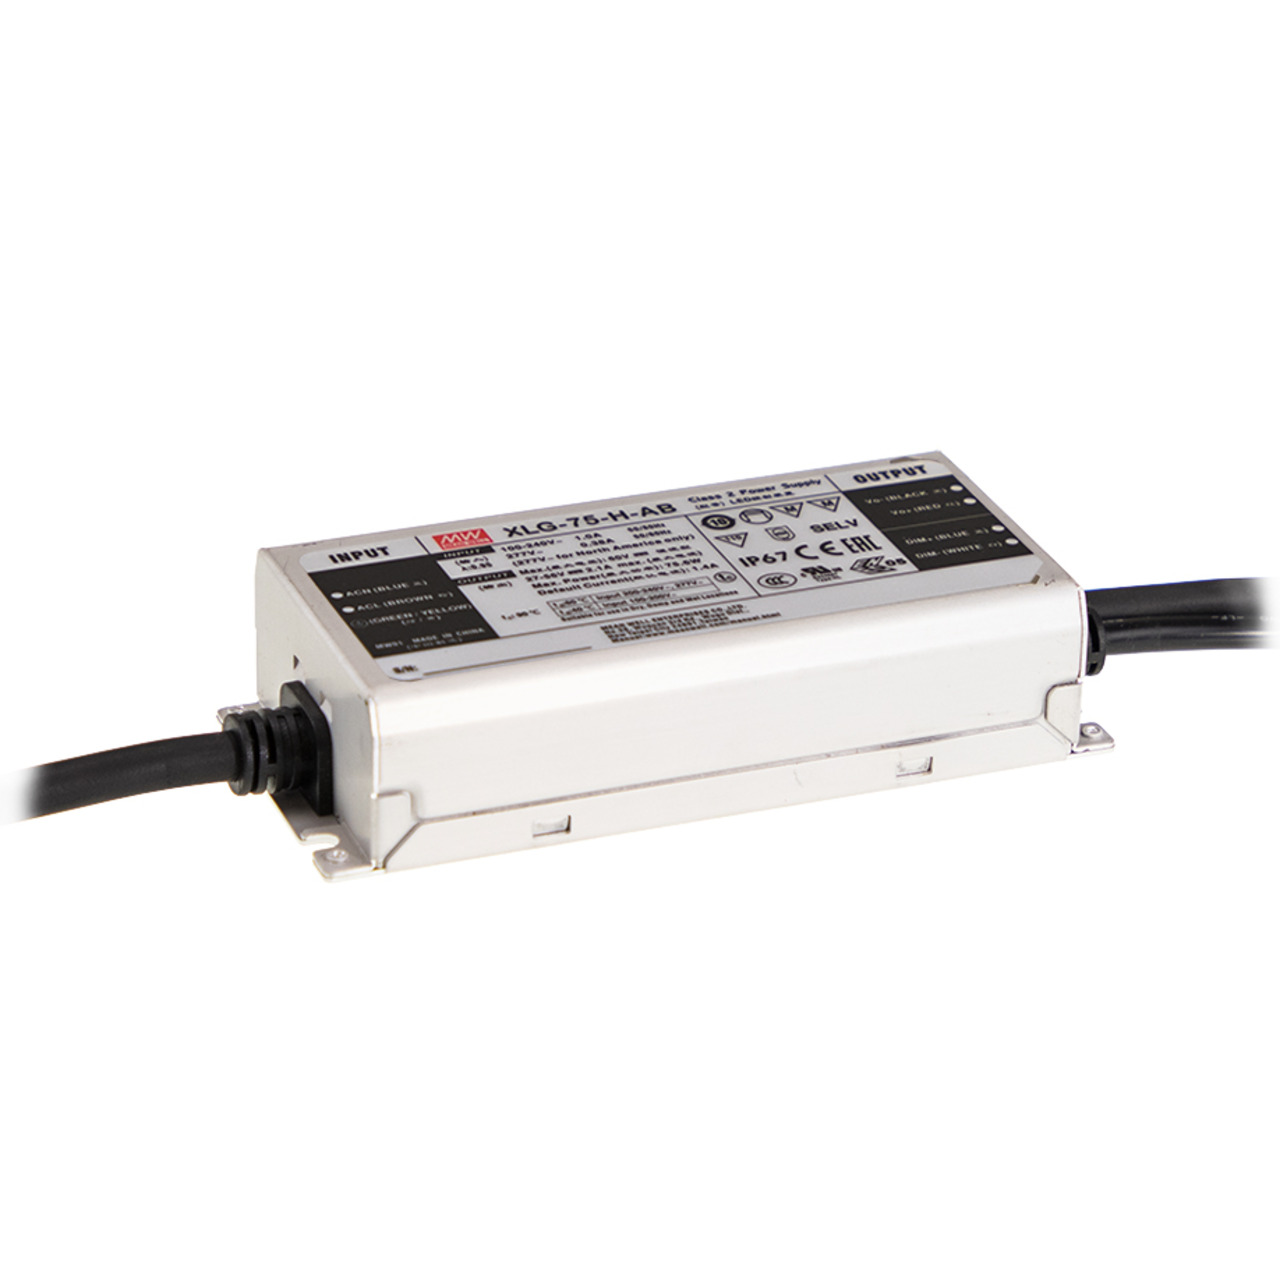 Mean Well Konstantstrom-Netzteil XLG-75-H-AB- 75 W- 1400 mA- 27 - 56 VDC- dimmbar- IP67